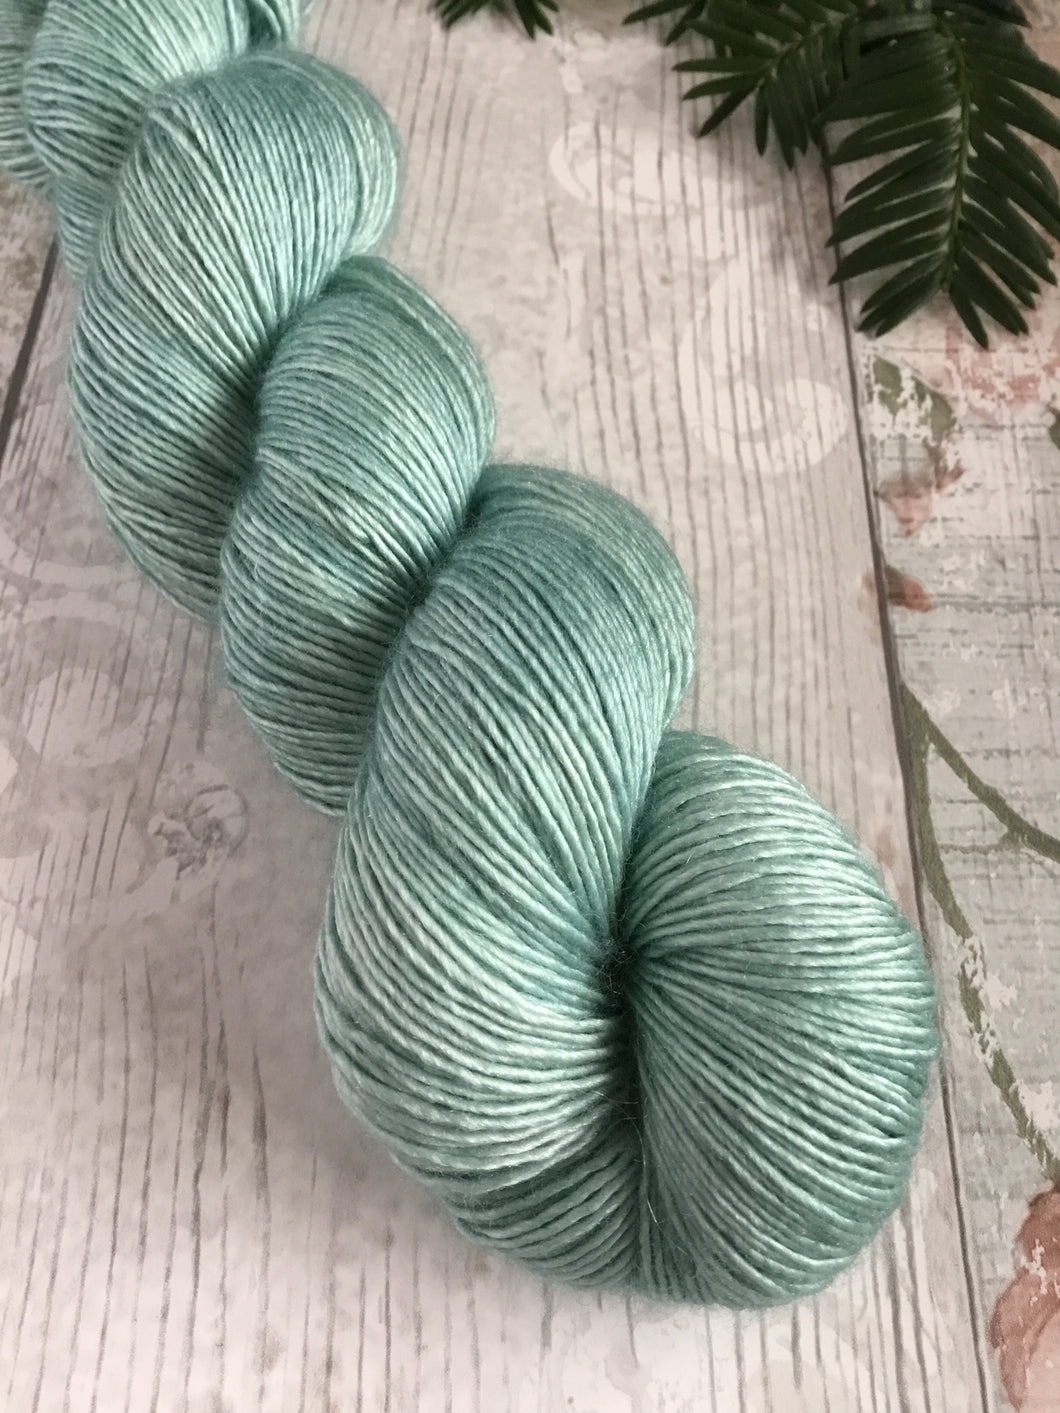 Silky Singles - 4ply - 100g -  Dark Duck Egg